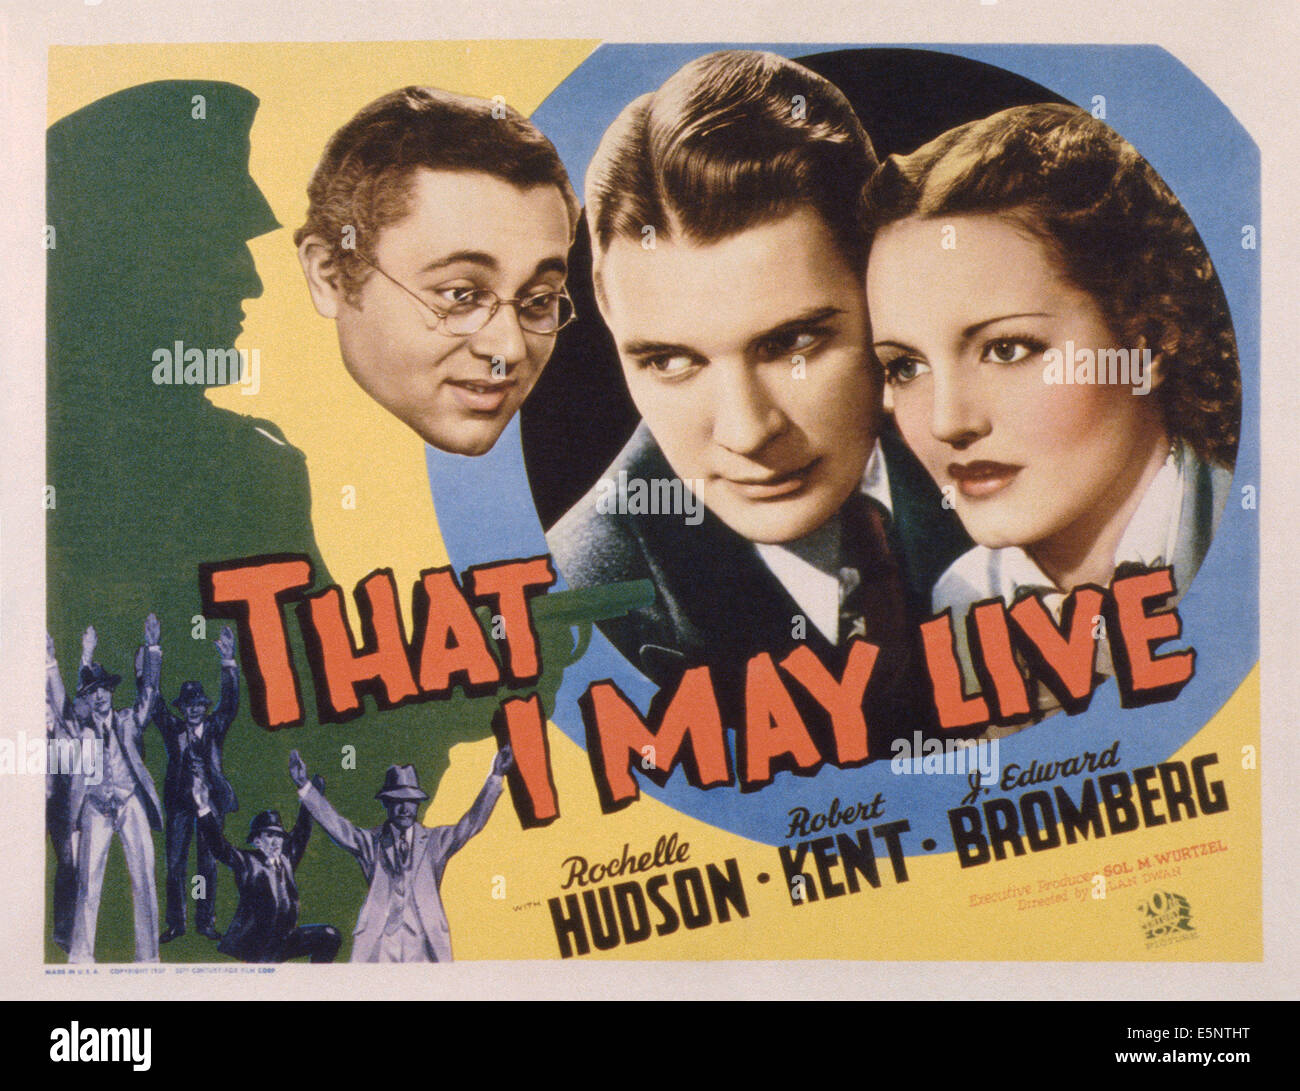 THAT I MAY LIVE, US lobbycard, from left: J. Edward Bromberg, Robert Kent, Rochelle Hudson, 1937. TM & Copyright - Stock Image